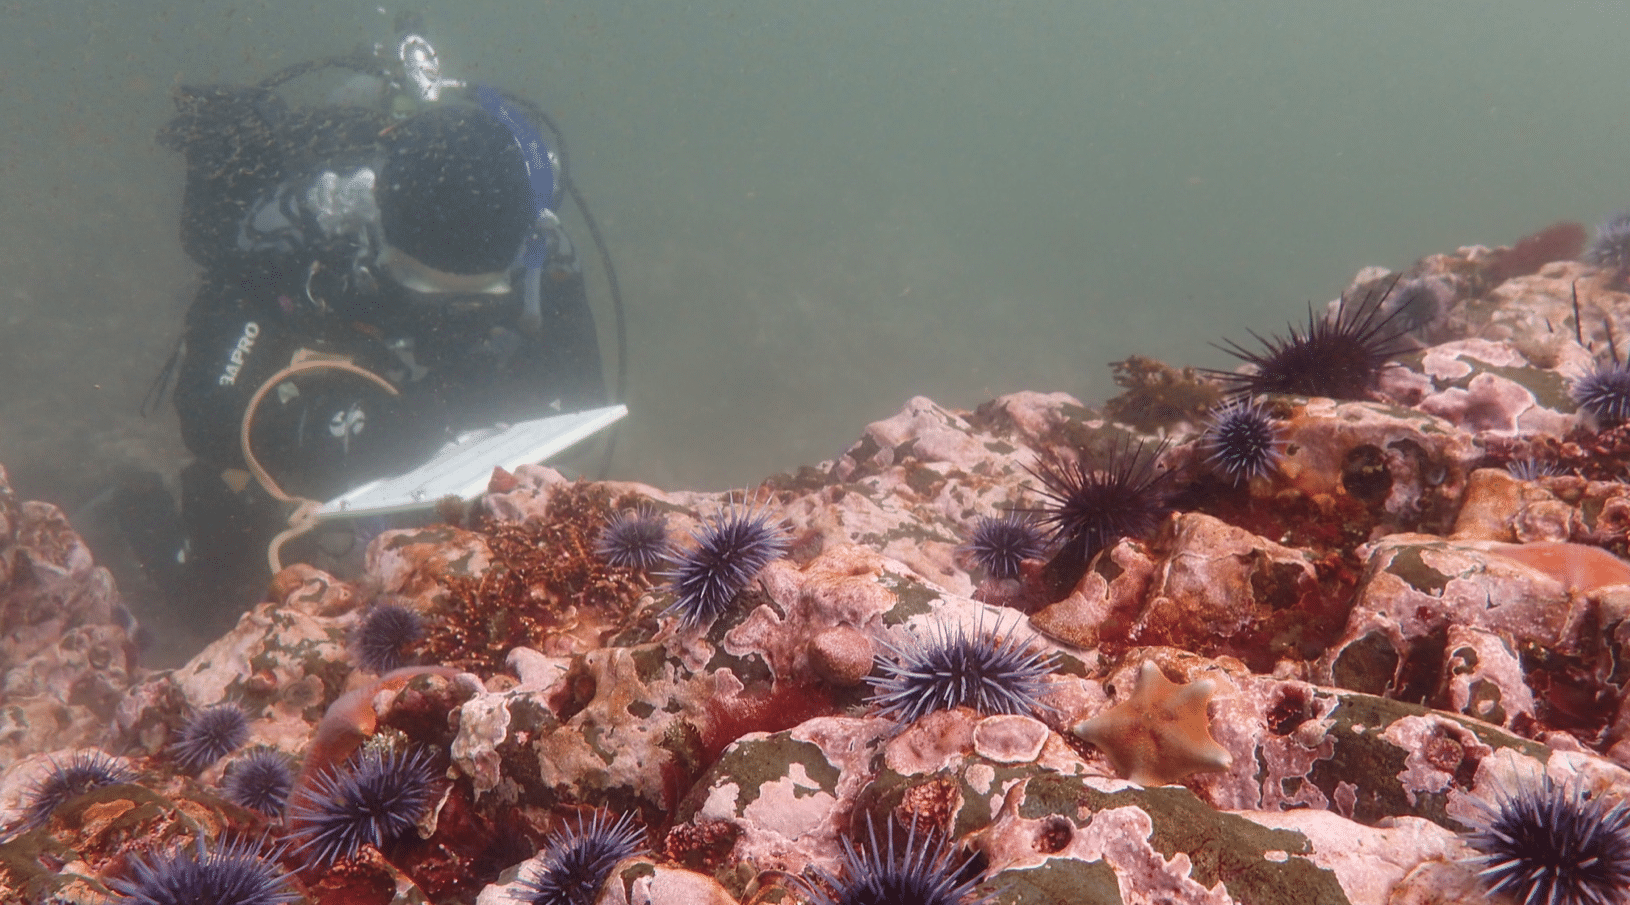 A scientific diver observes purple sea urchin barrens in California. (Cynthia Catton/California Department of Fish and Wildlife)